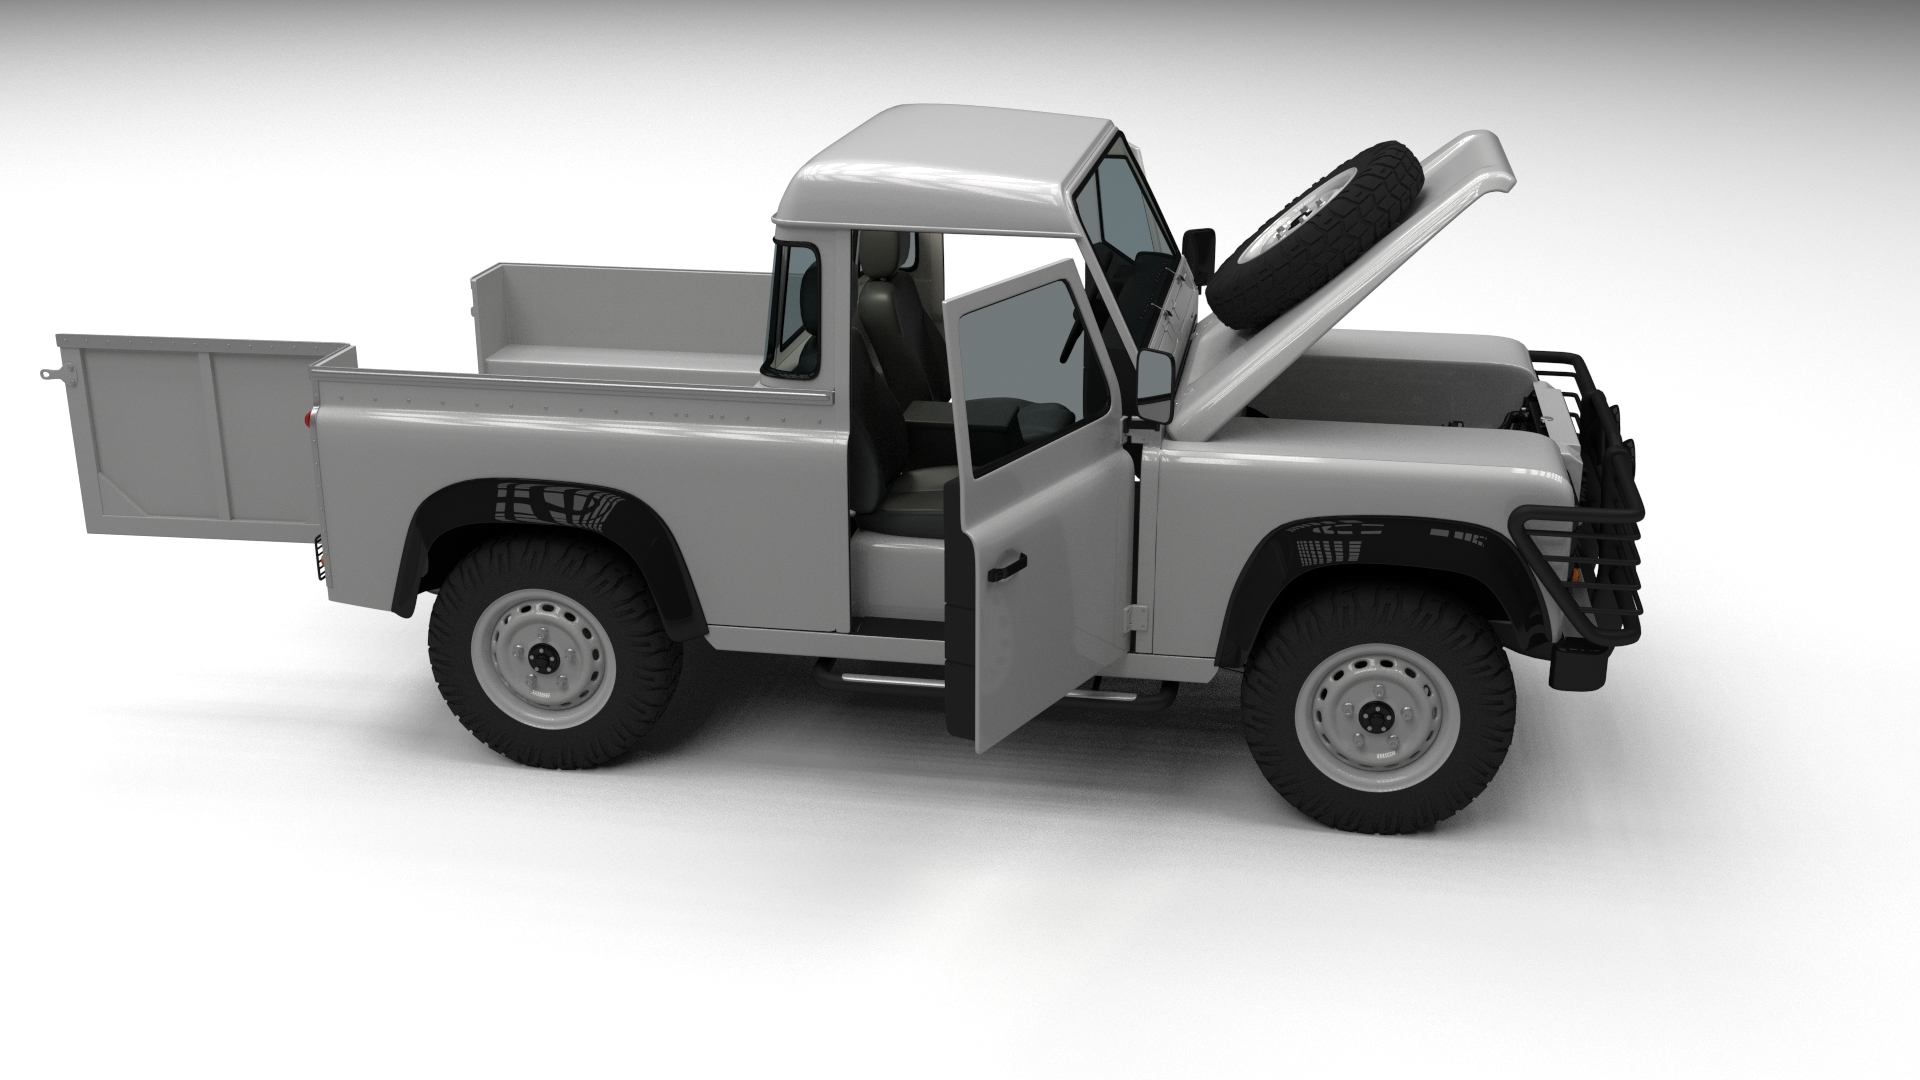 Full Land Rover Defender 90 Pick Up by dragosburian